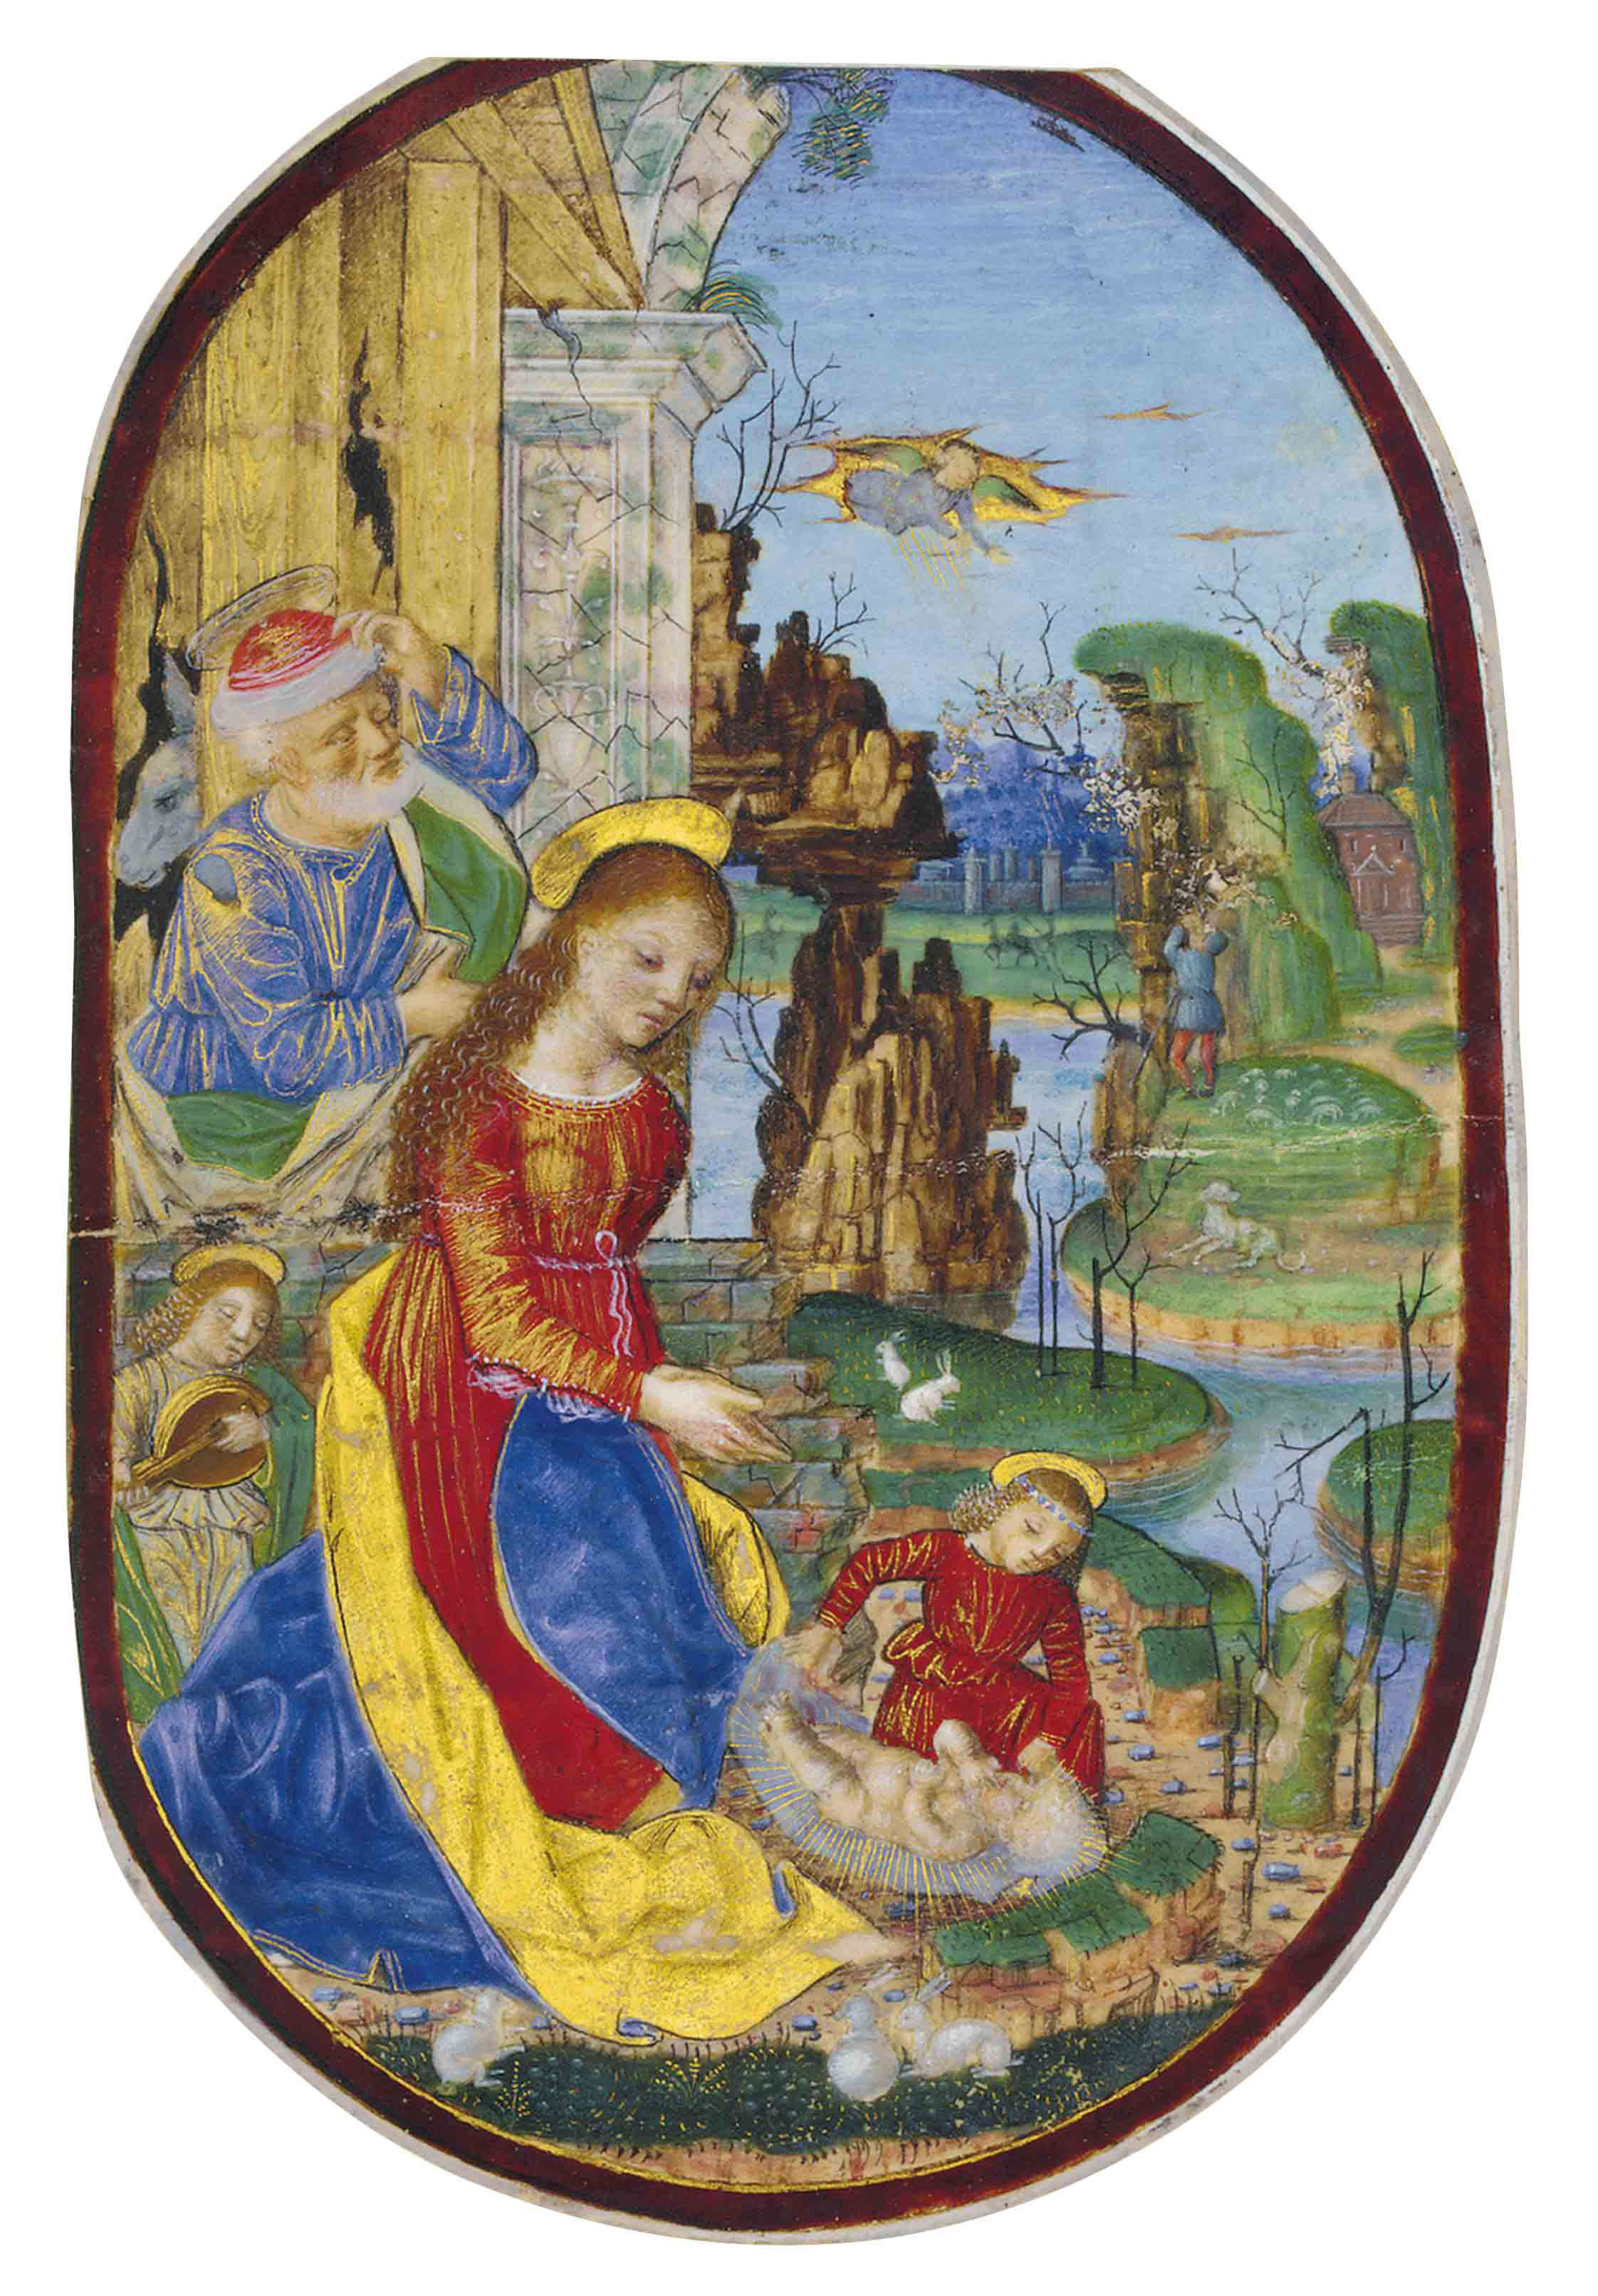 NATIVITY, WITH THE VIRGIN IN A